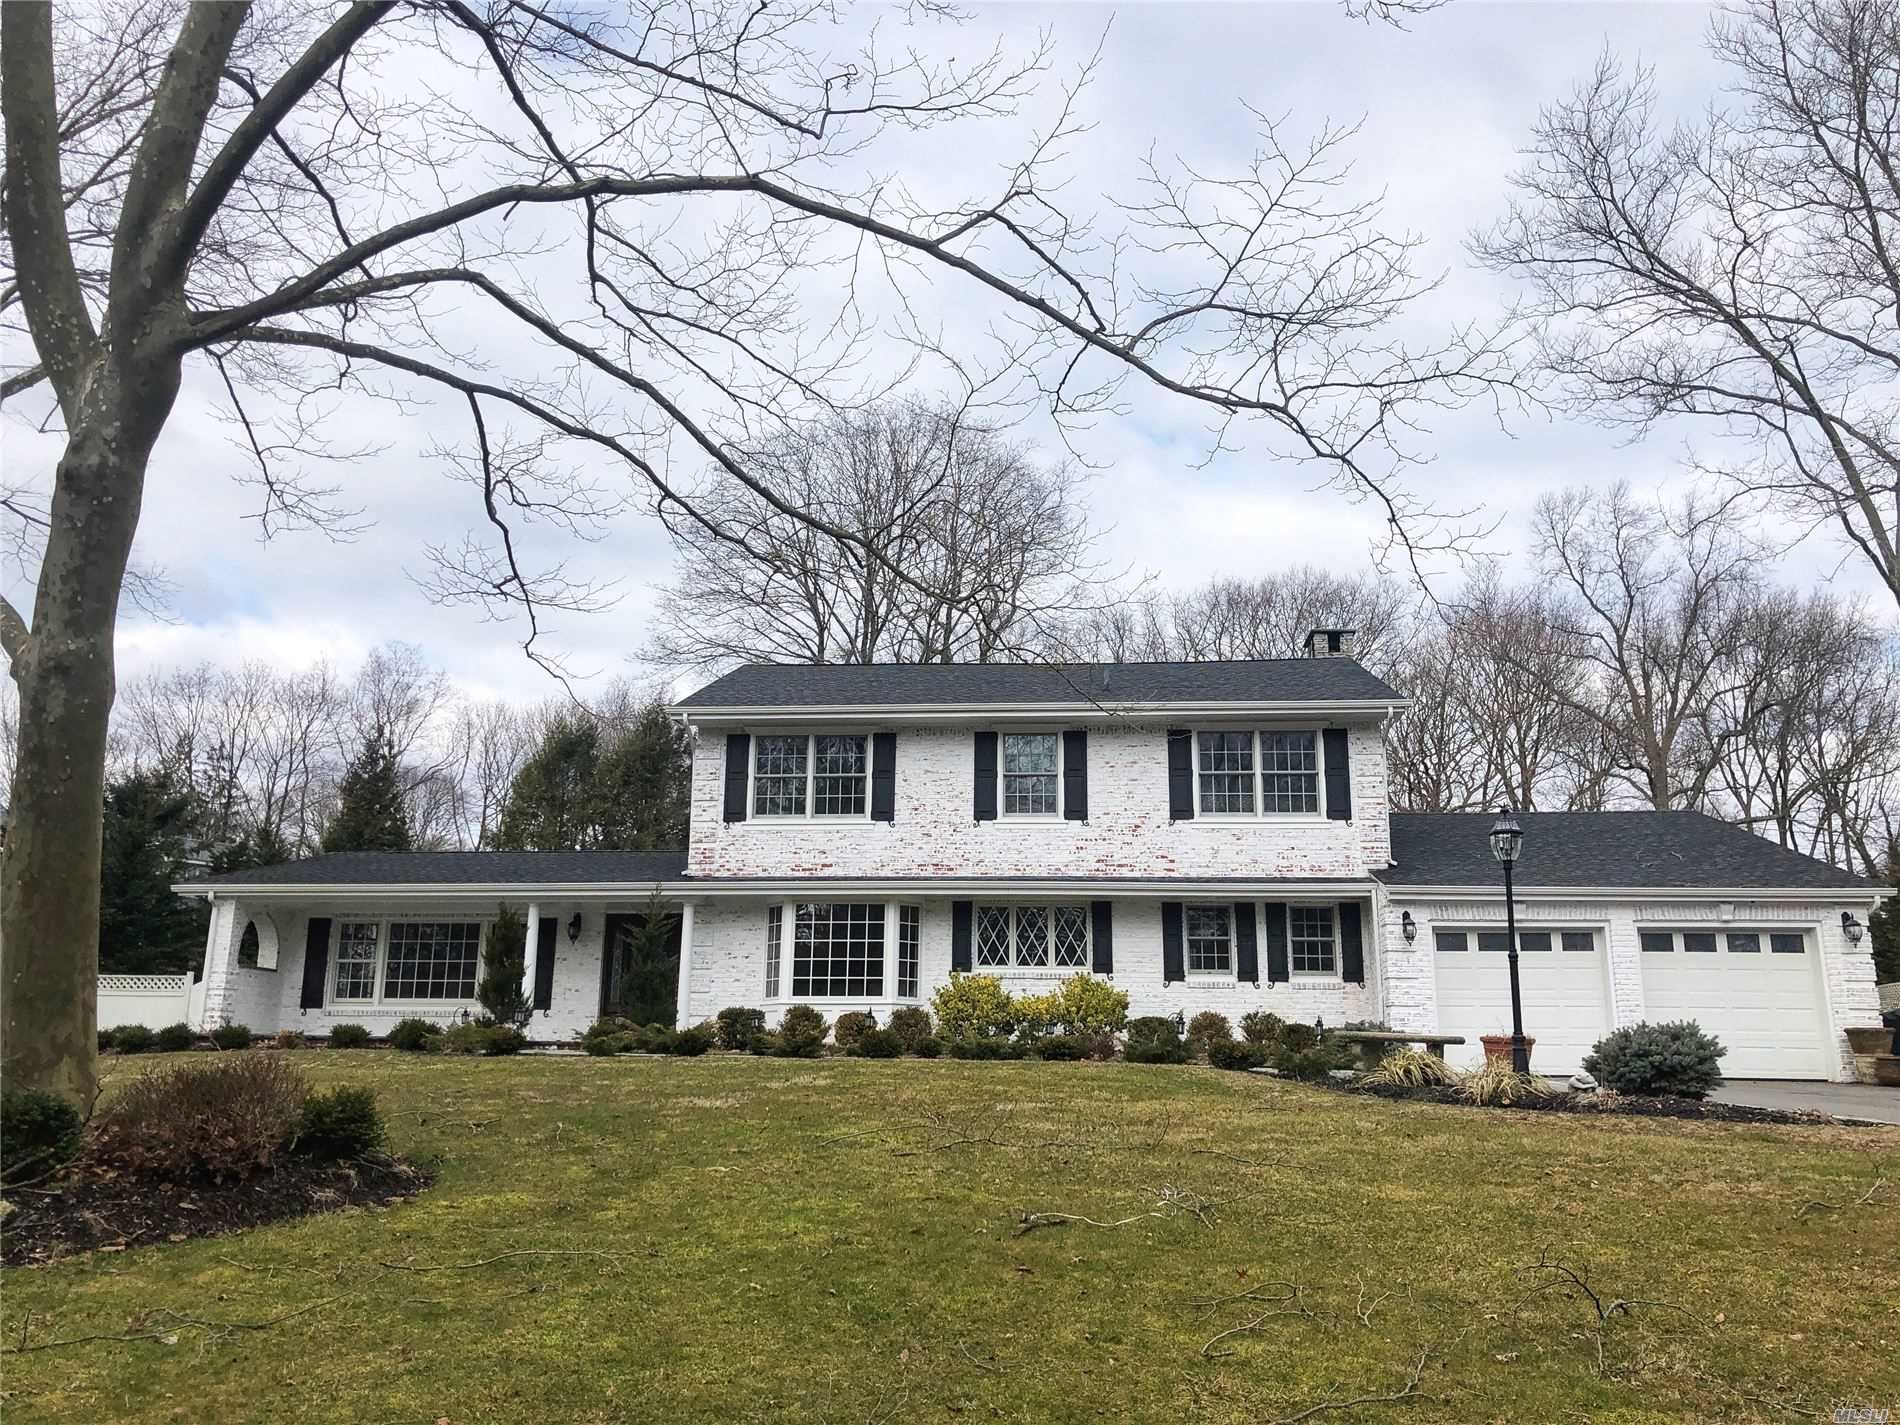 102 Turtle Cove Lane, Huntington, NY 11743 - MLS#: 3202763